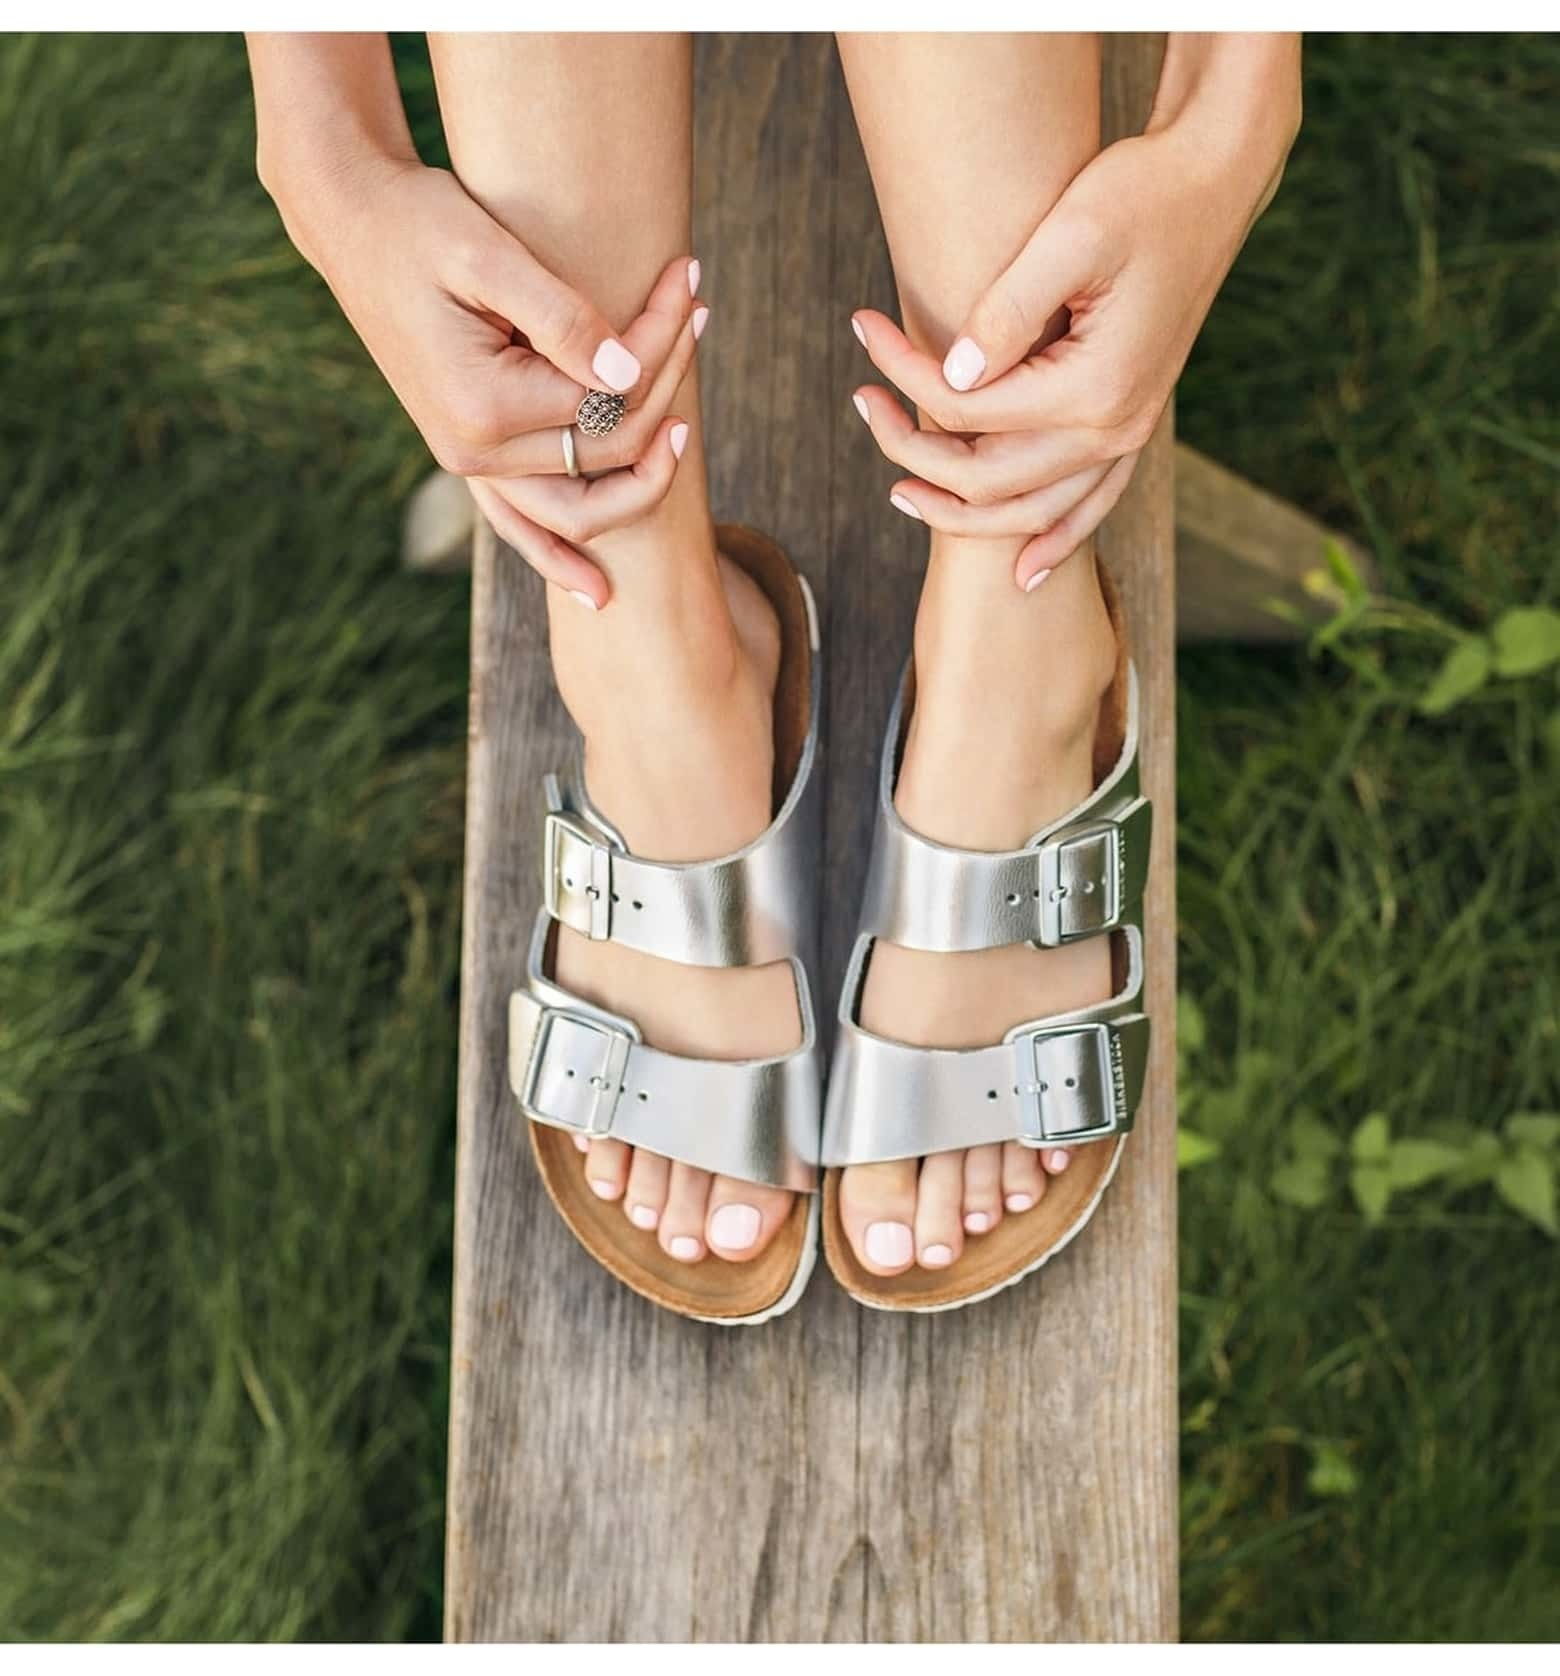 Model wearing the shoes with two wide buckles across the footbed in silver